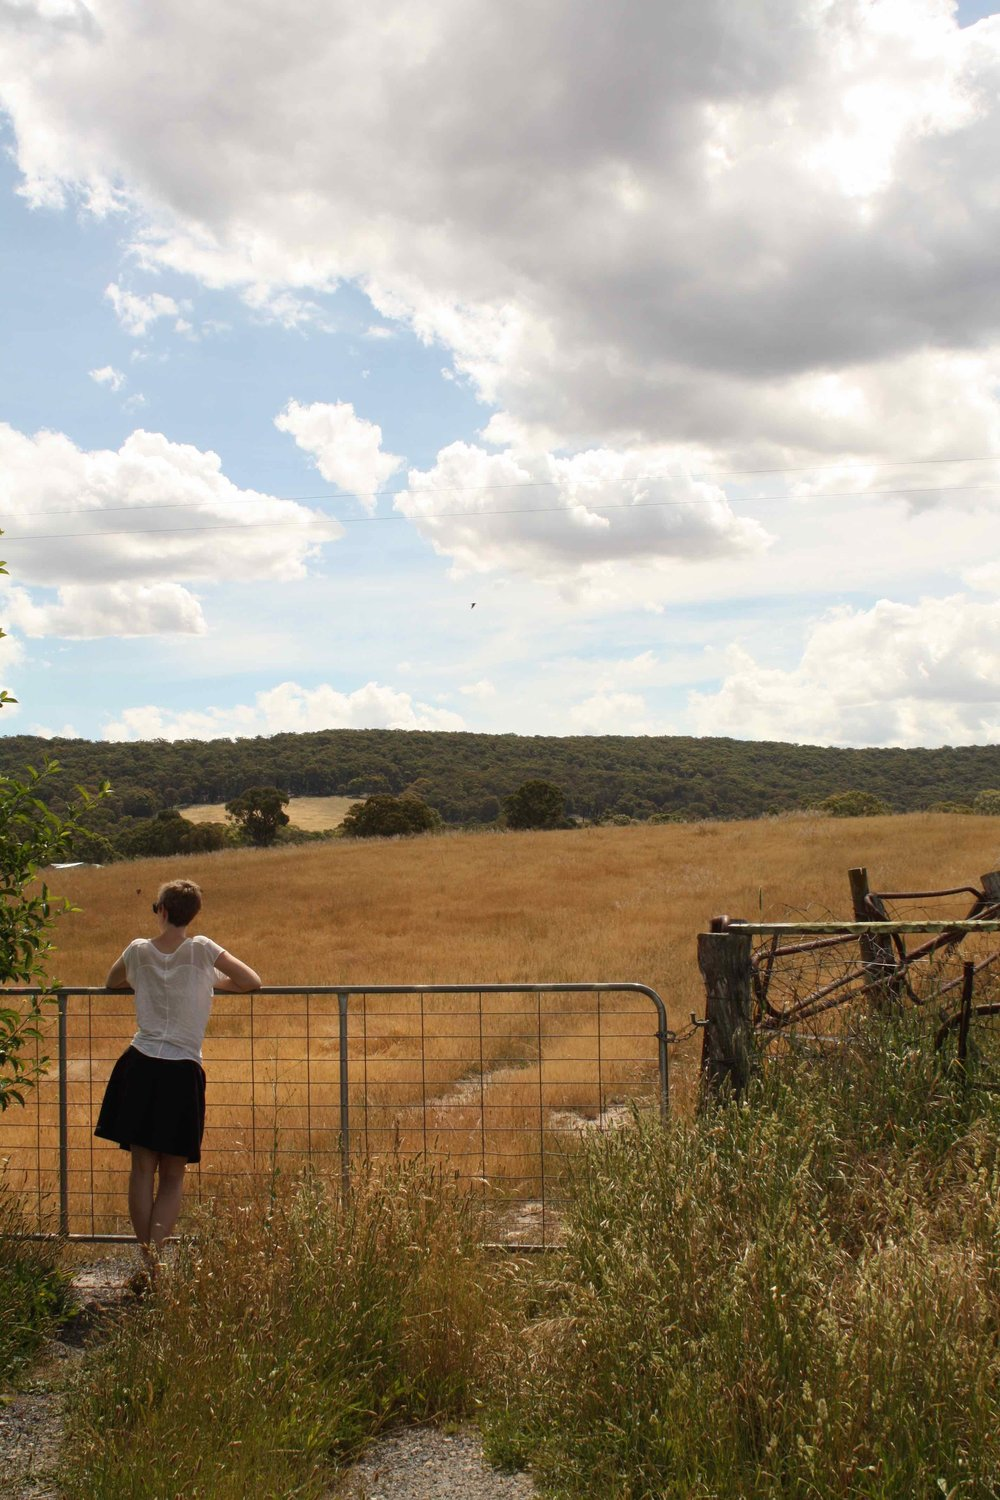 Countryside, NSW, 2014 ©